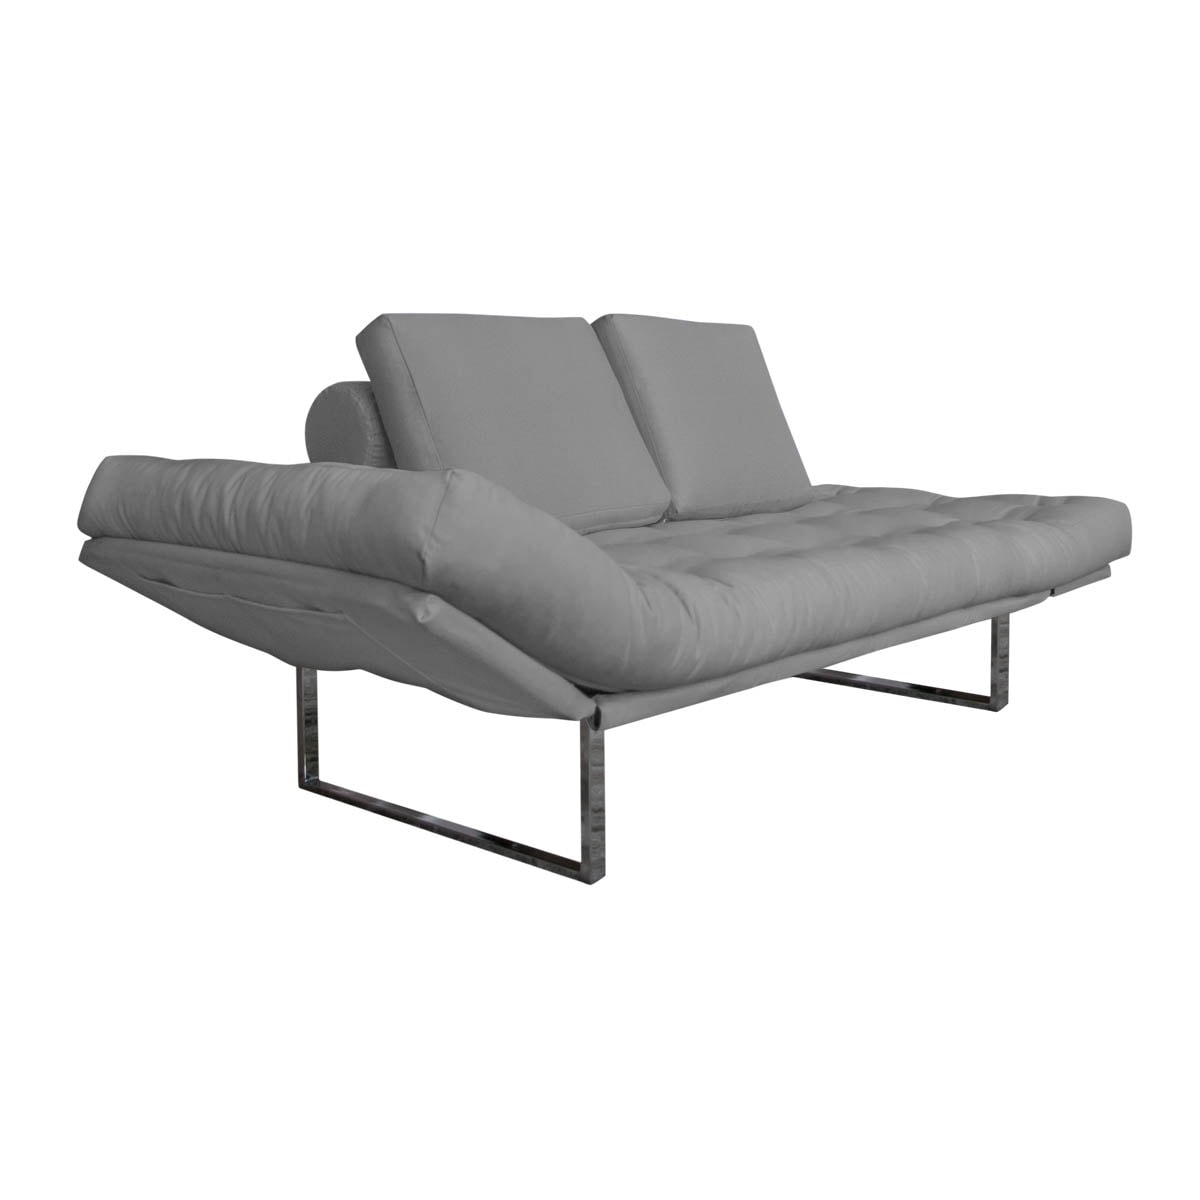 Futon sofa cama barcelona for Sofa 03 lugares